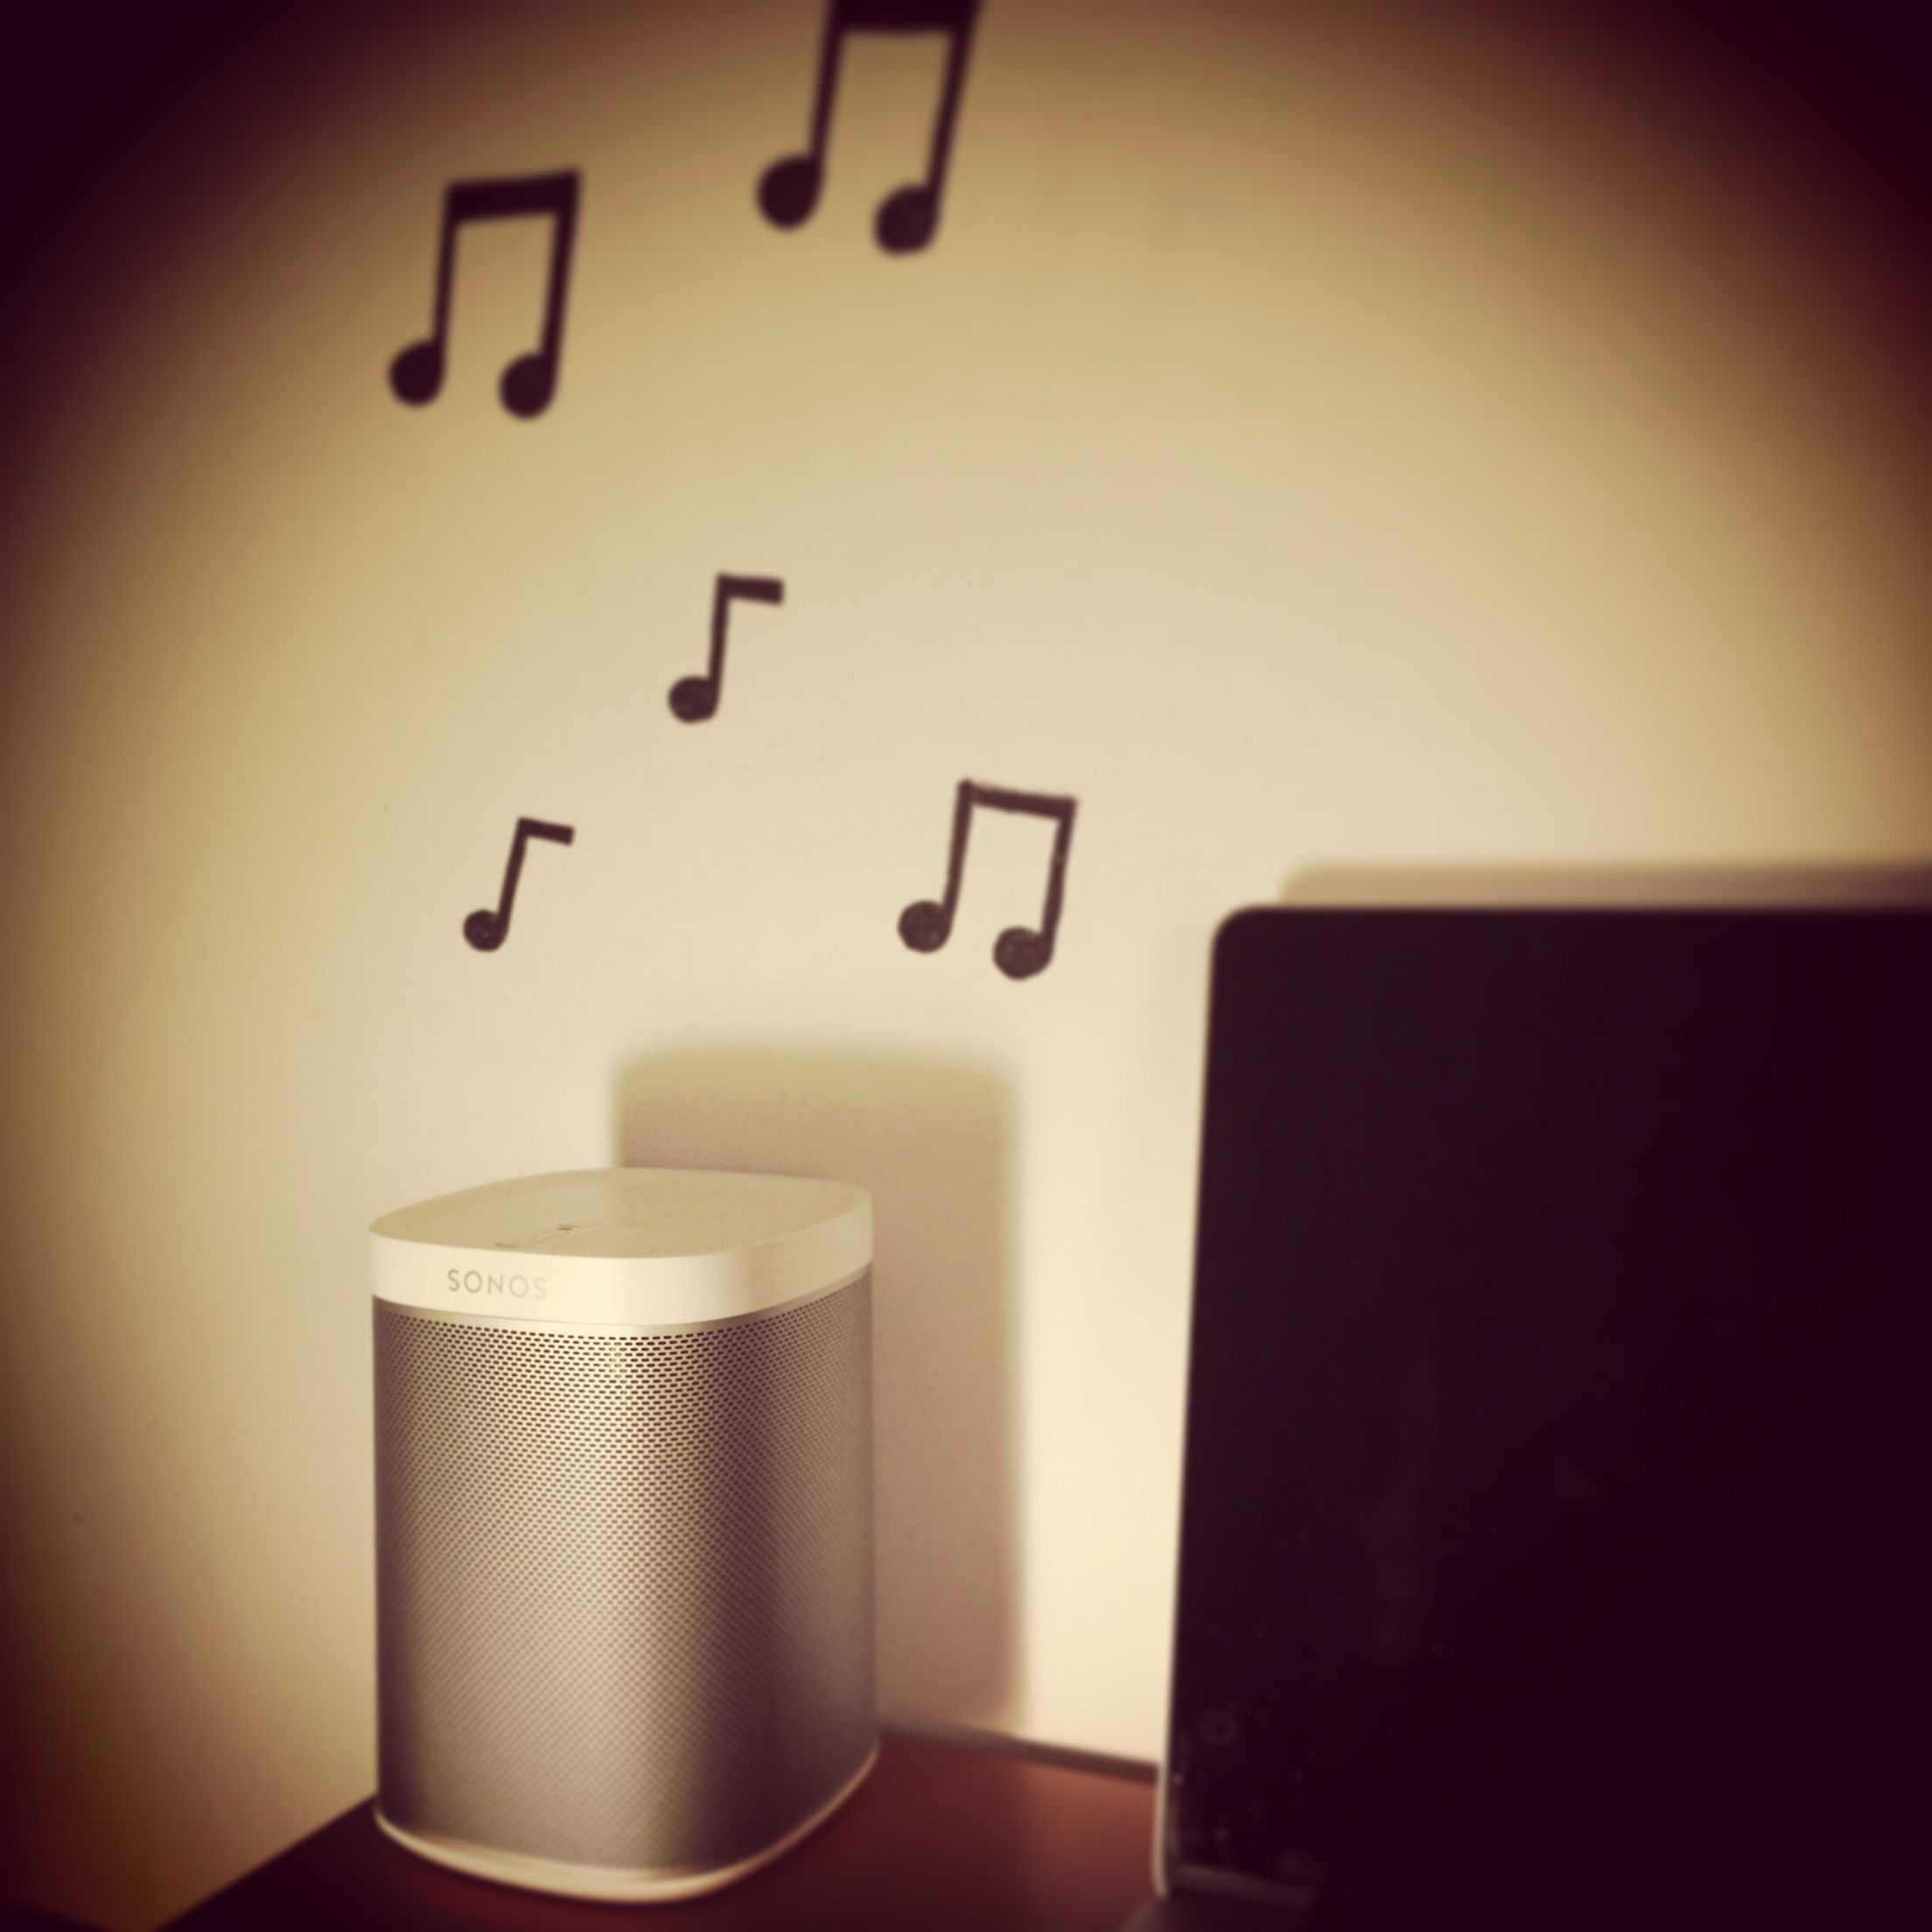 Sonos your home and be creative #DIY #project #Sonos #sound ...